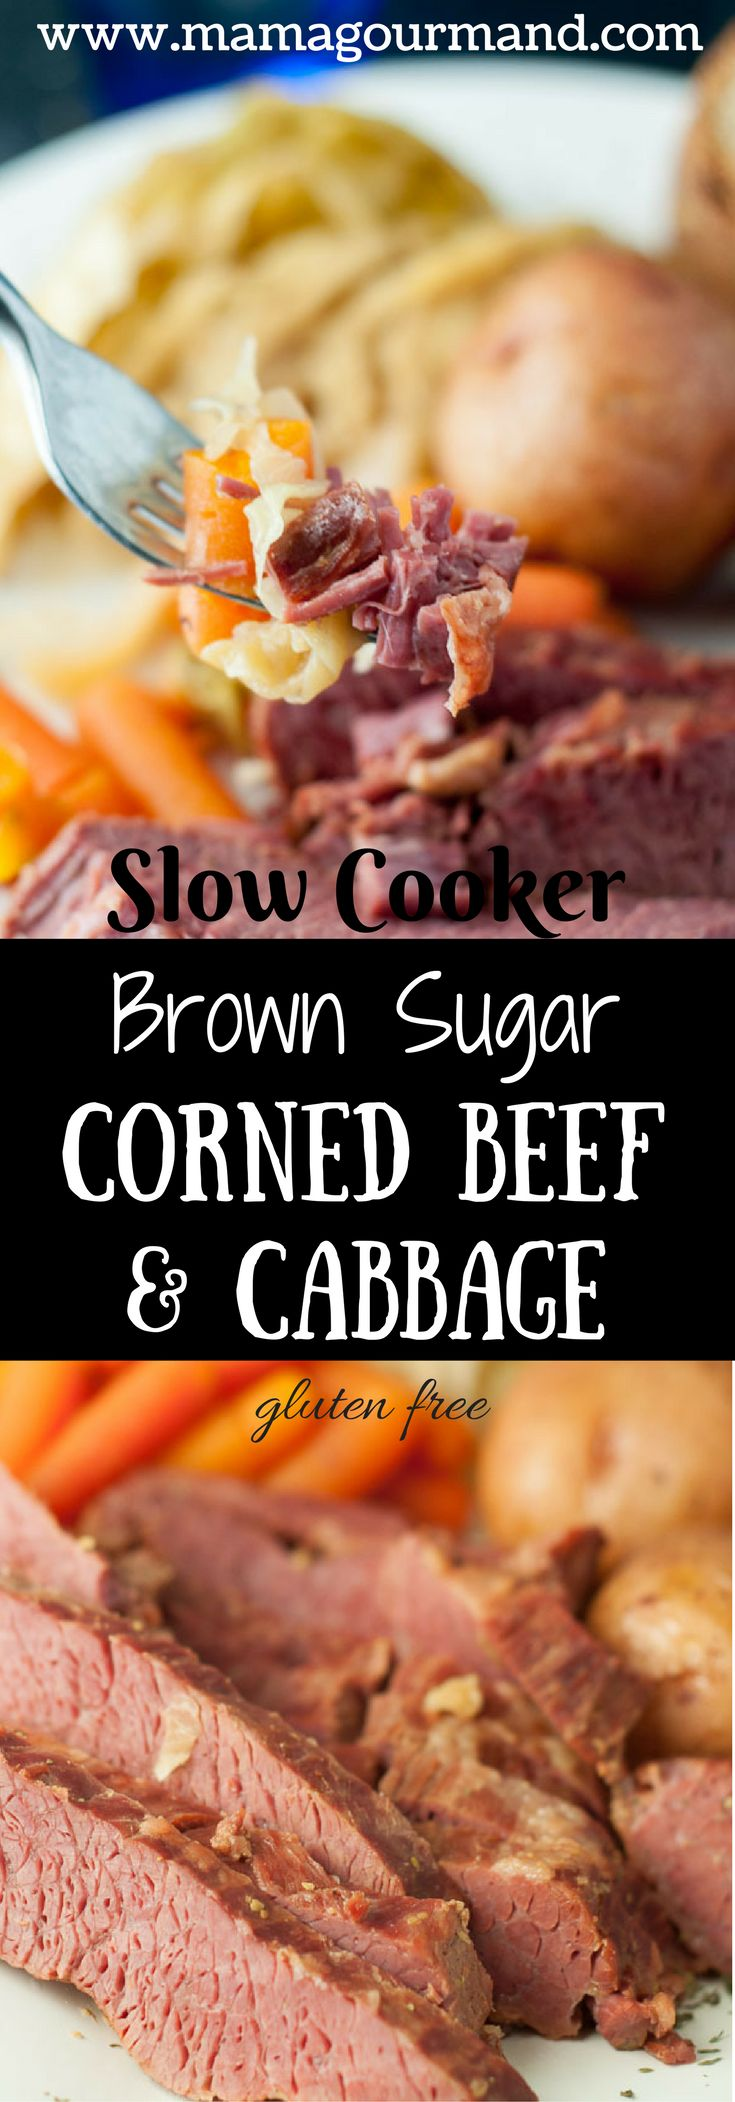 This Slow Cooker Apple and Brown Sugar Corned Beef and Cabbage recipe will be the best version you have ever tasted! Double the recipe because it's that good. http://www.mamgourmand.com (Cabbage Recipes)